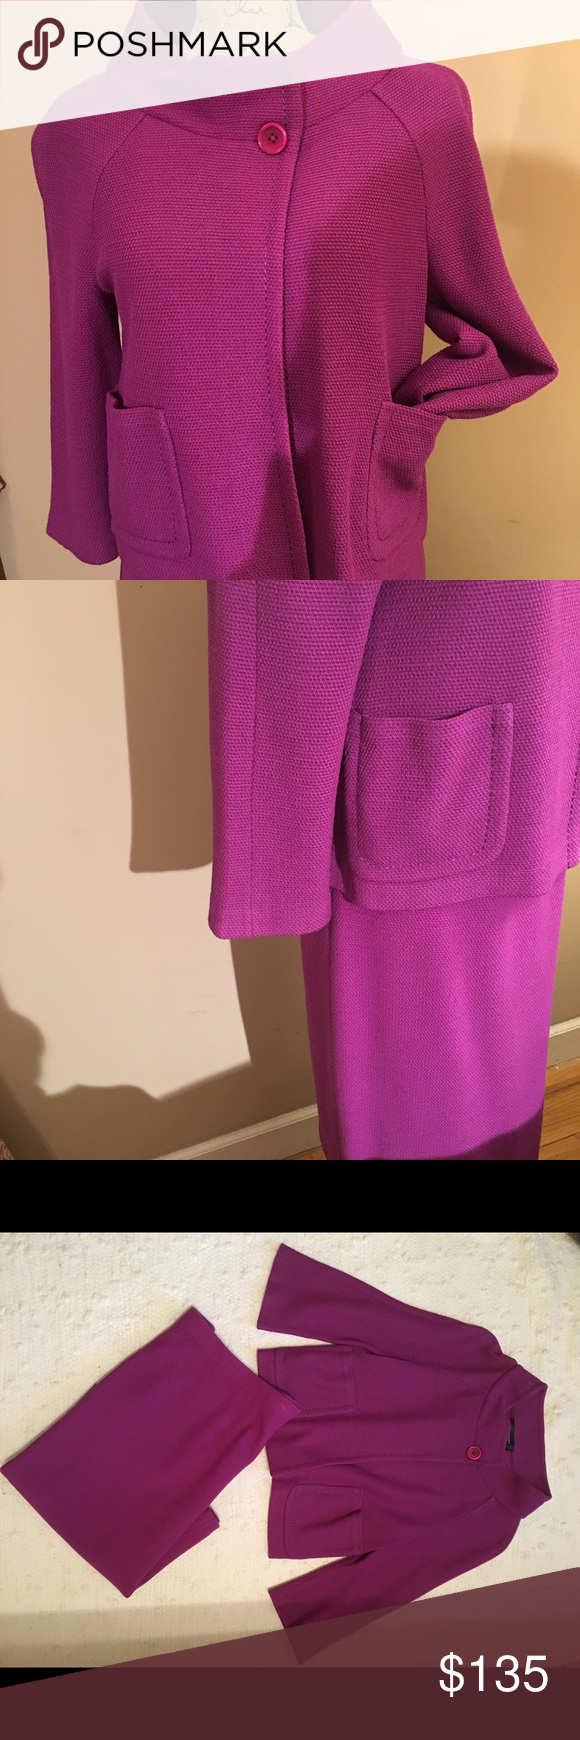 St John suit. Purplish color St John skirt w elastic,  size 8, jacket size 8 w one button st collar, two front pockets, 3/4 sleeves. Good condition.  No knits or stains. St. John Other